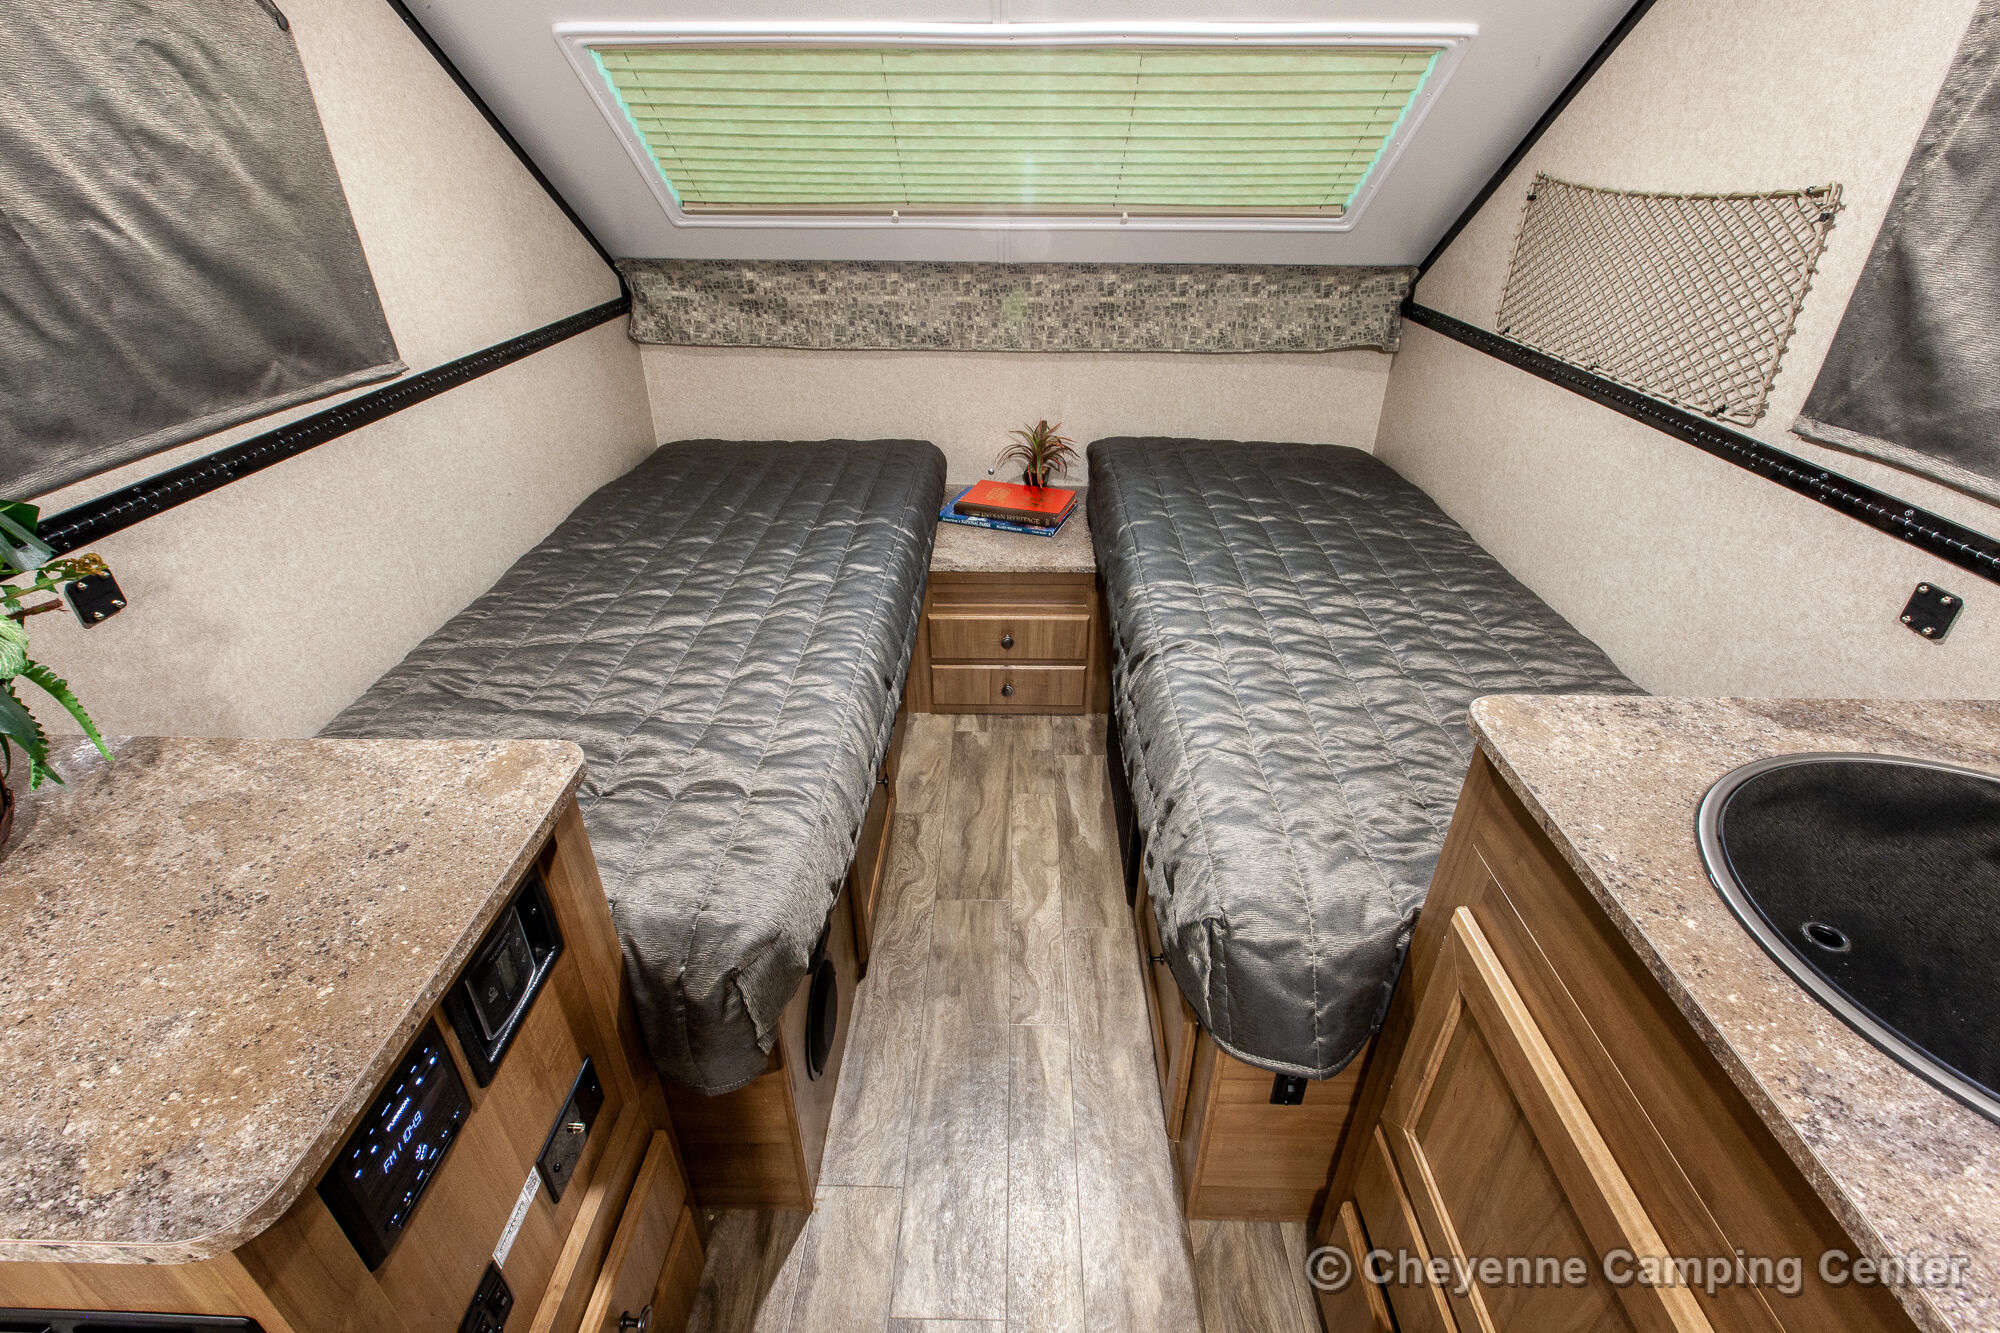 2019 Forest River Flagstaff High Wall T21TBHW Folding Camper Interior Image